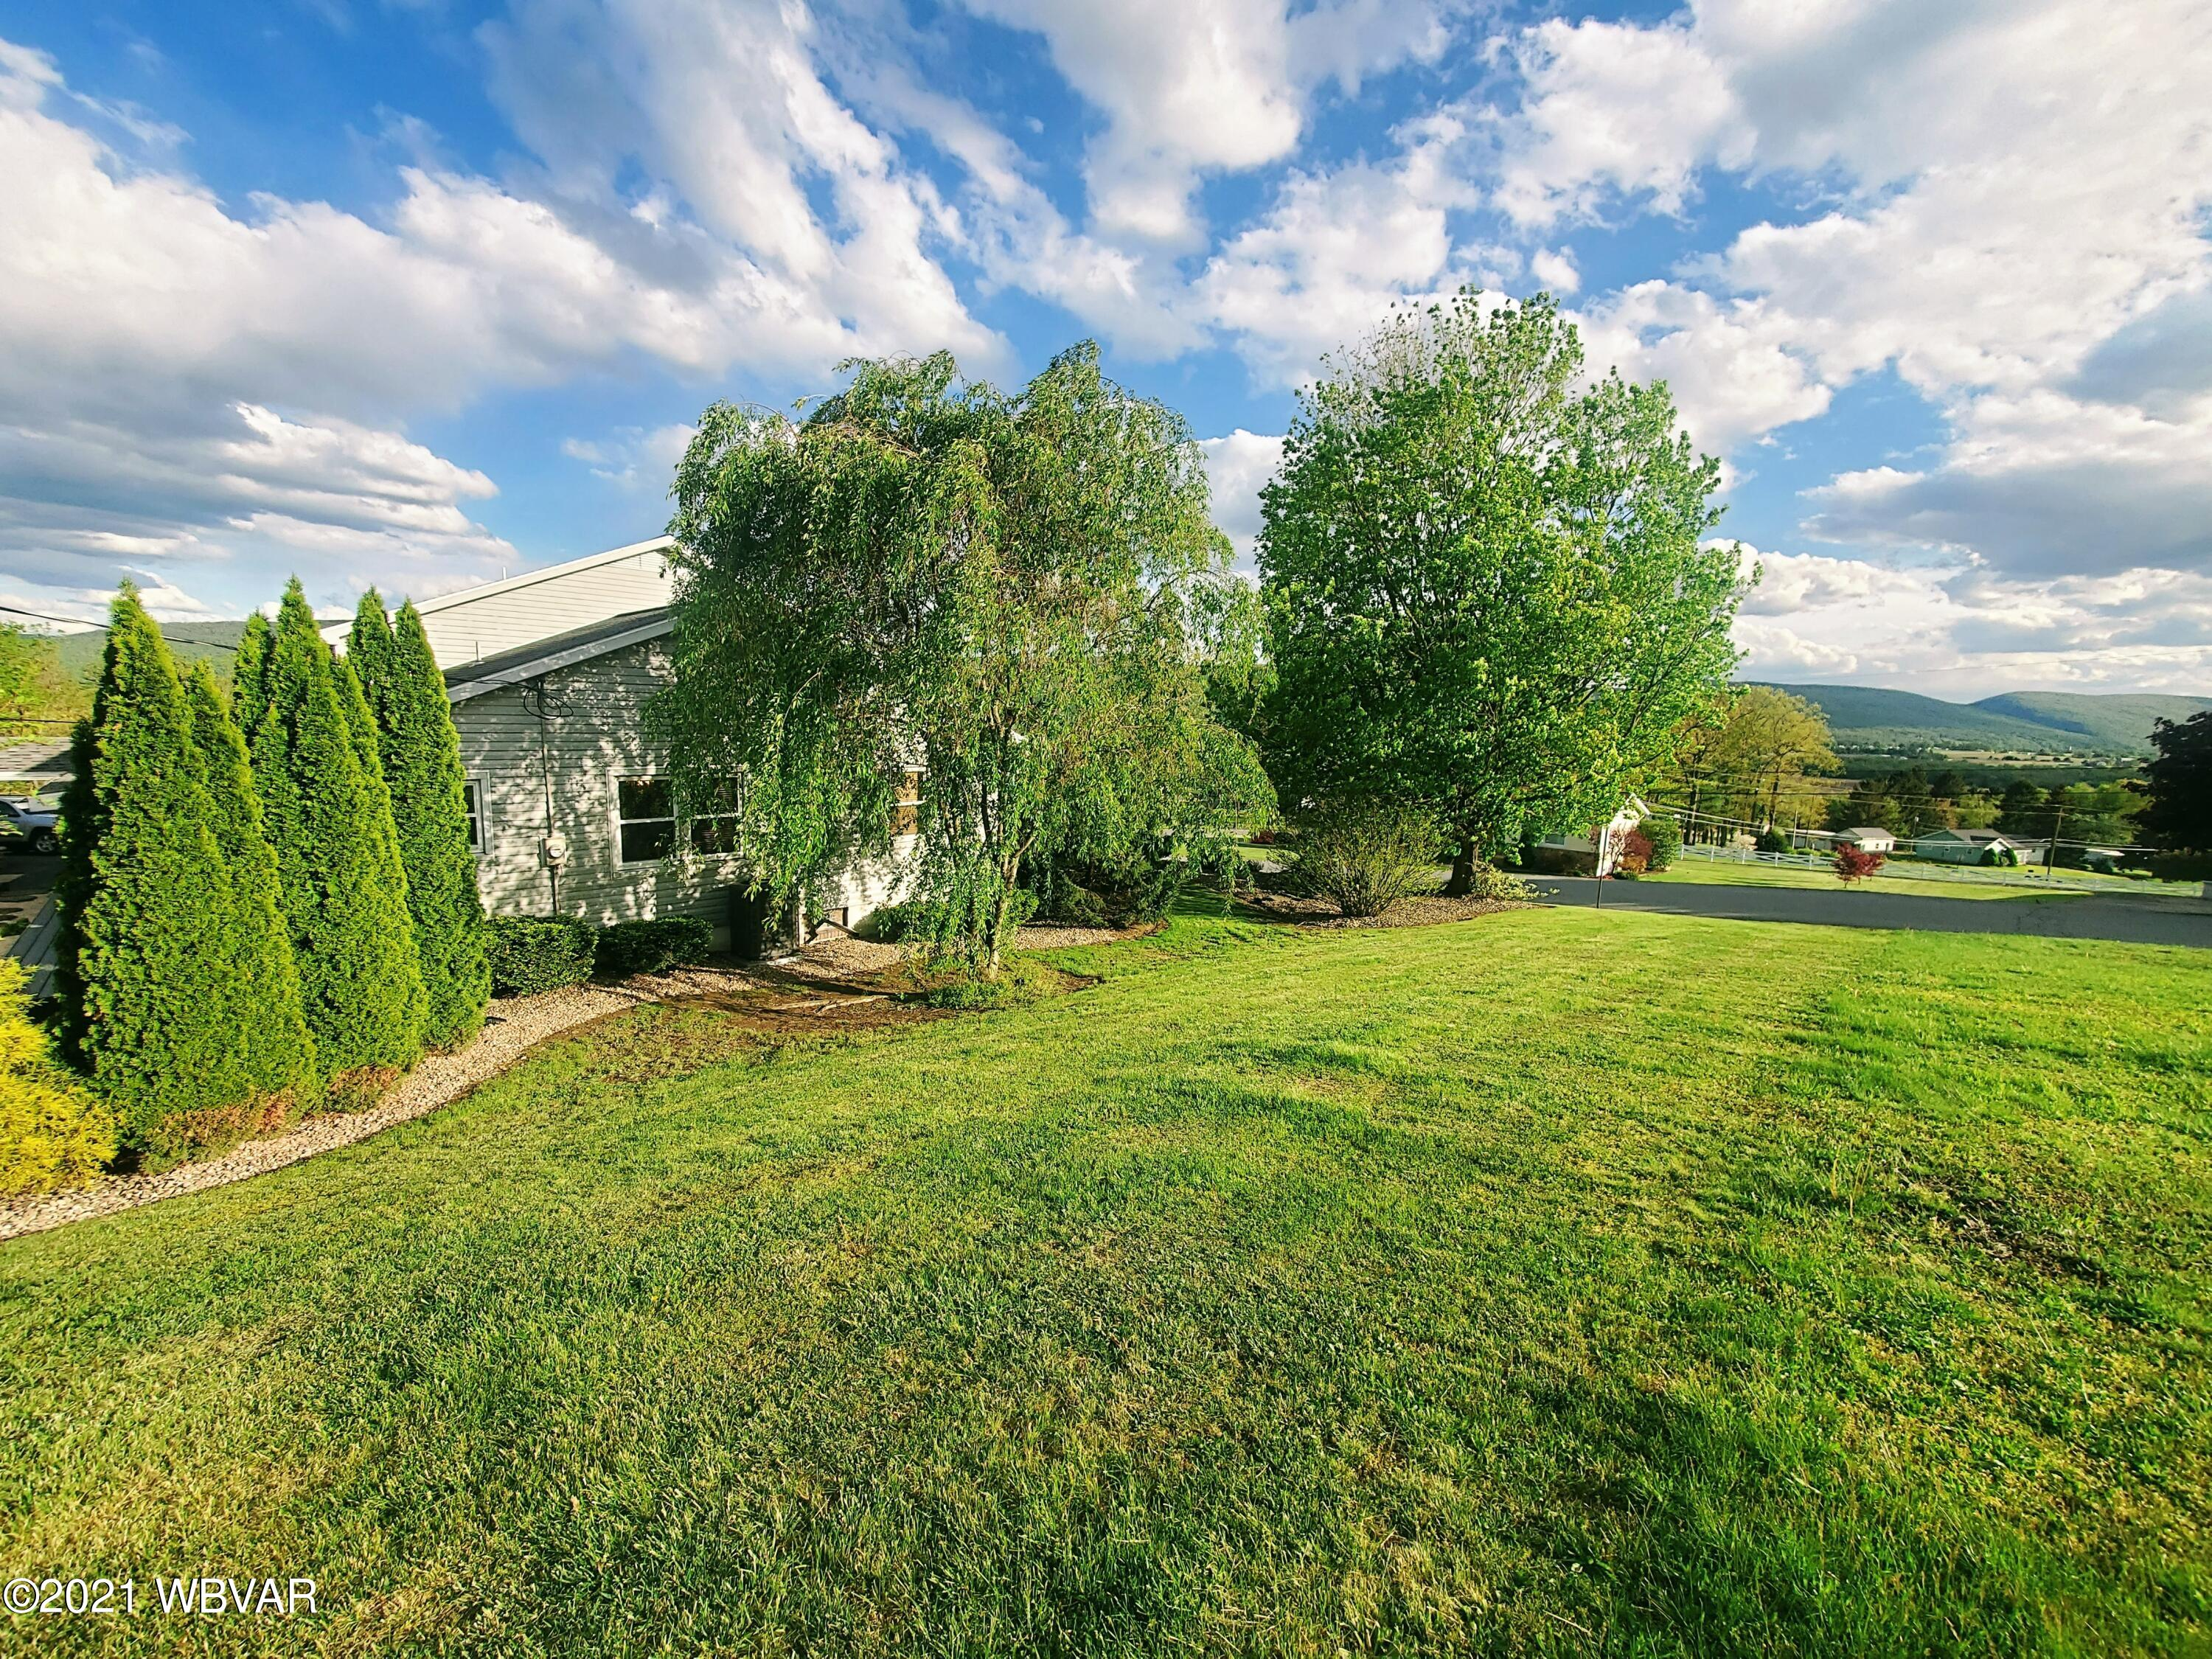 22 ZION VIEW DRIVE, Linden, PA 17744, 5 Bedrooms Bedrooms, ,3 BathroomsBathrooms,Residential,For sale,ZION VIEW,WB-92497